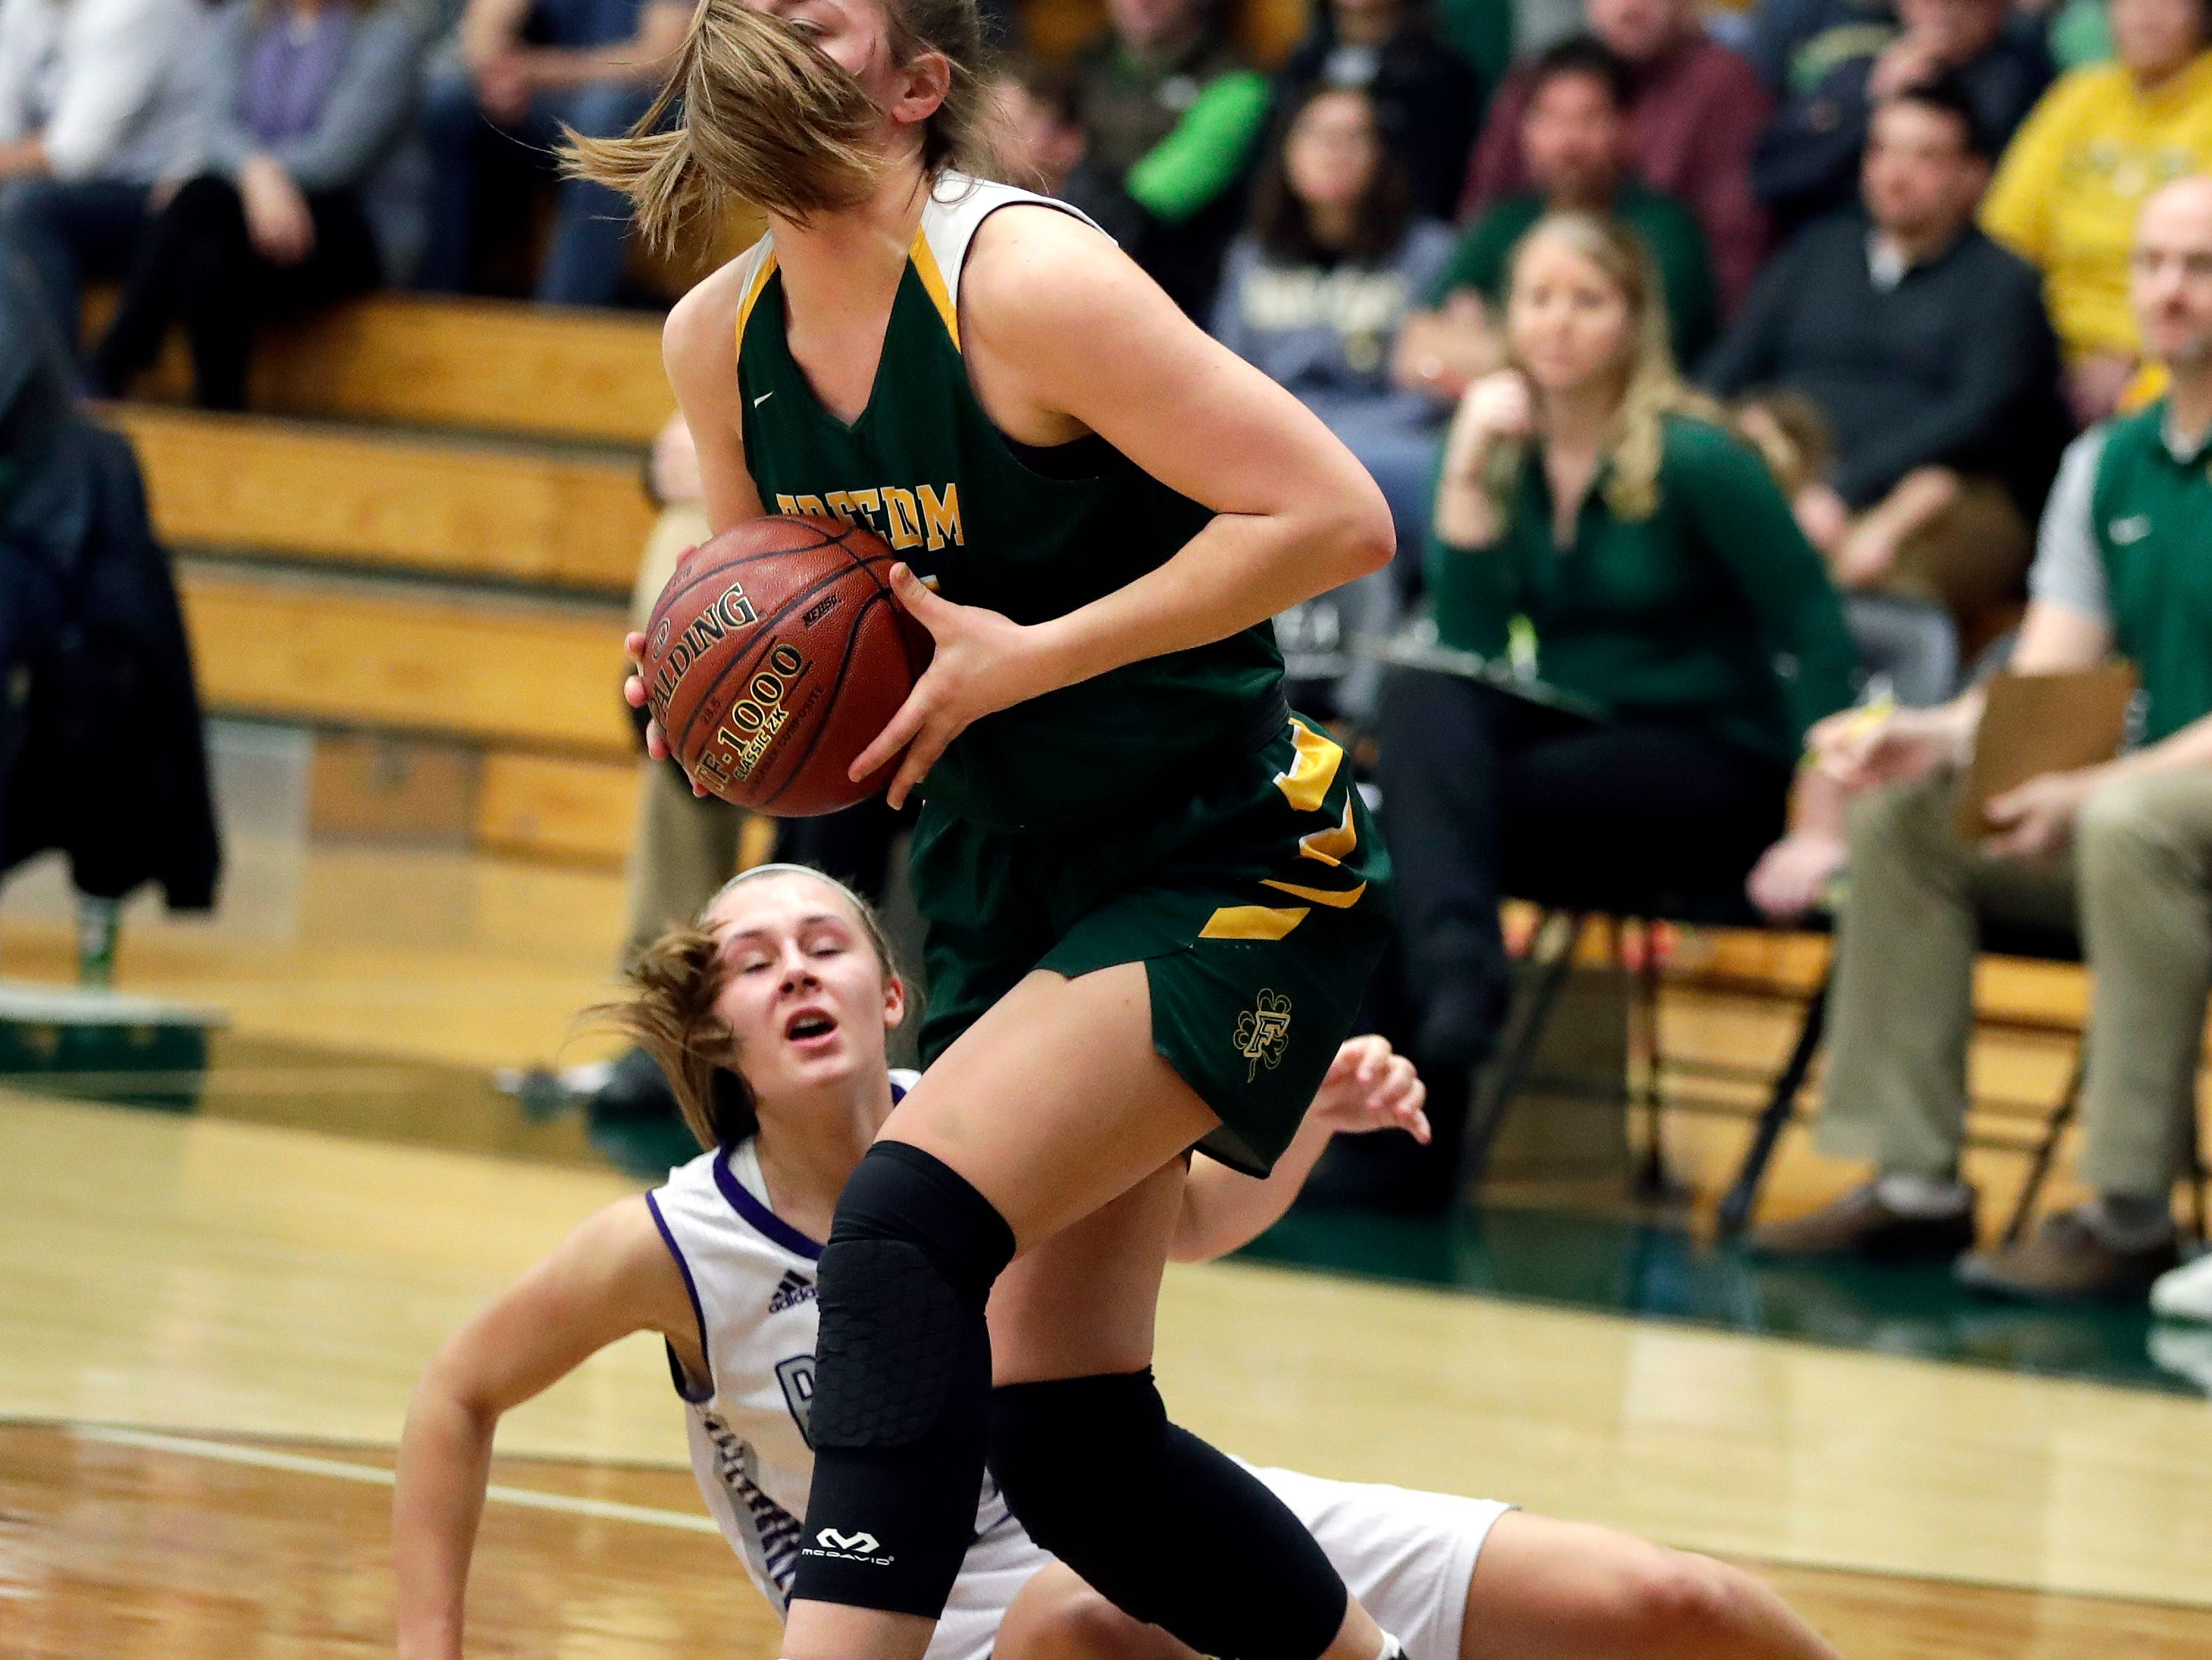 Freedom's Taylor Haase (22) keeps the ball away from an opponent during a WIAA Division 3 girls basketball sectional championship March 2, 2019 at Ashwaubenon High School. Freedom defeated Kiel 53-40.